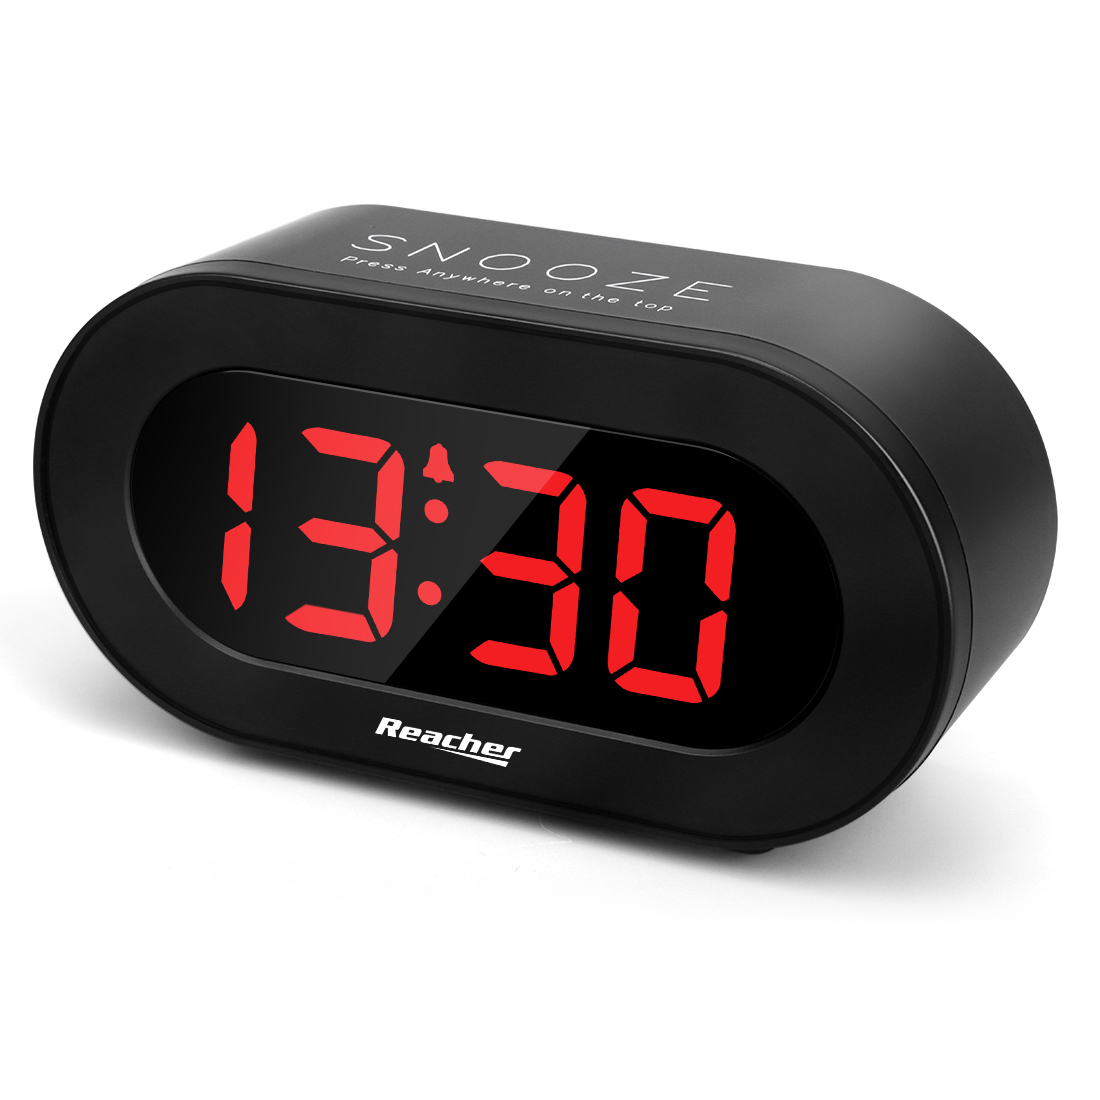 (A1C1S)Large LED Digital Alarm Clock with USB Charging Port